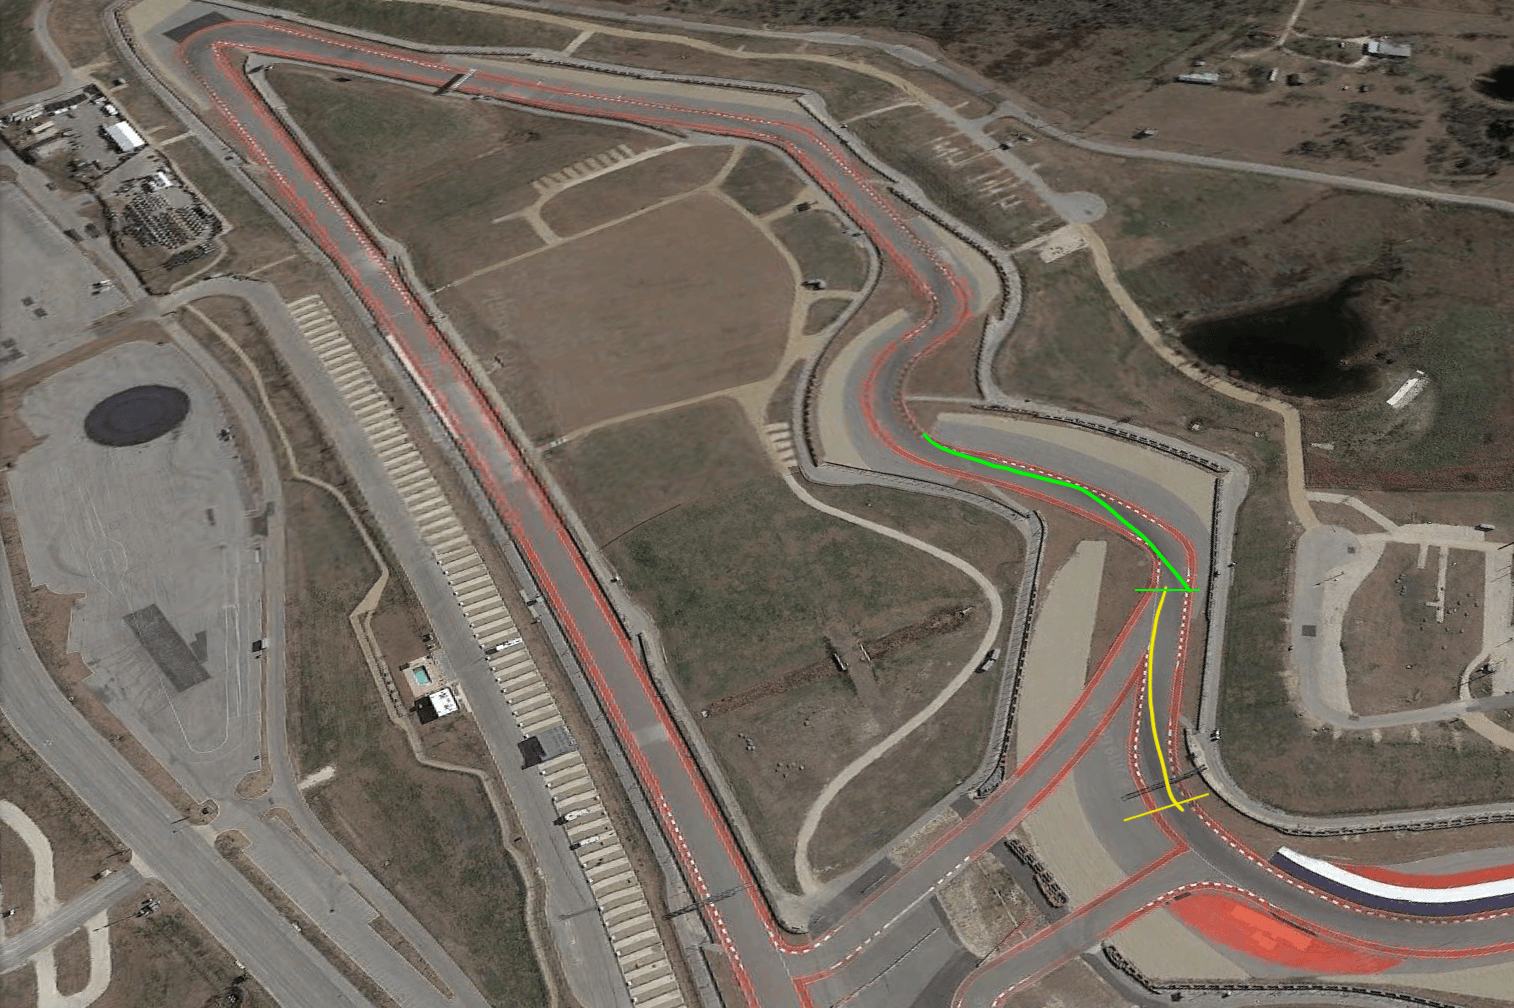 turn 6 and 7 at COTA